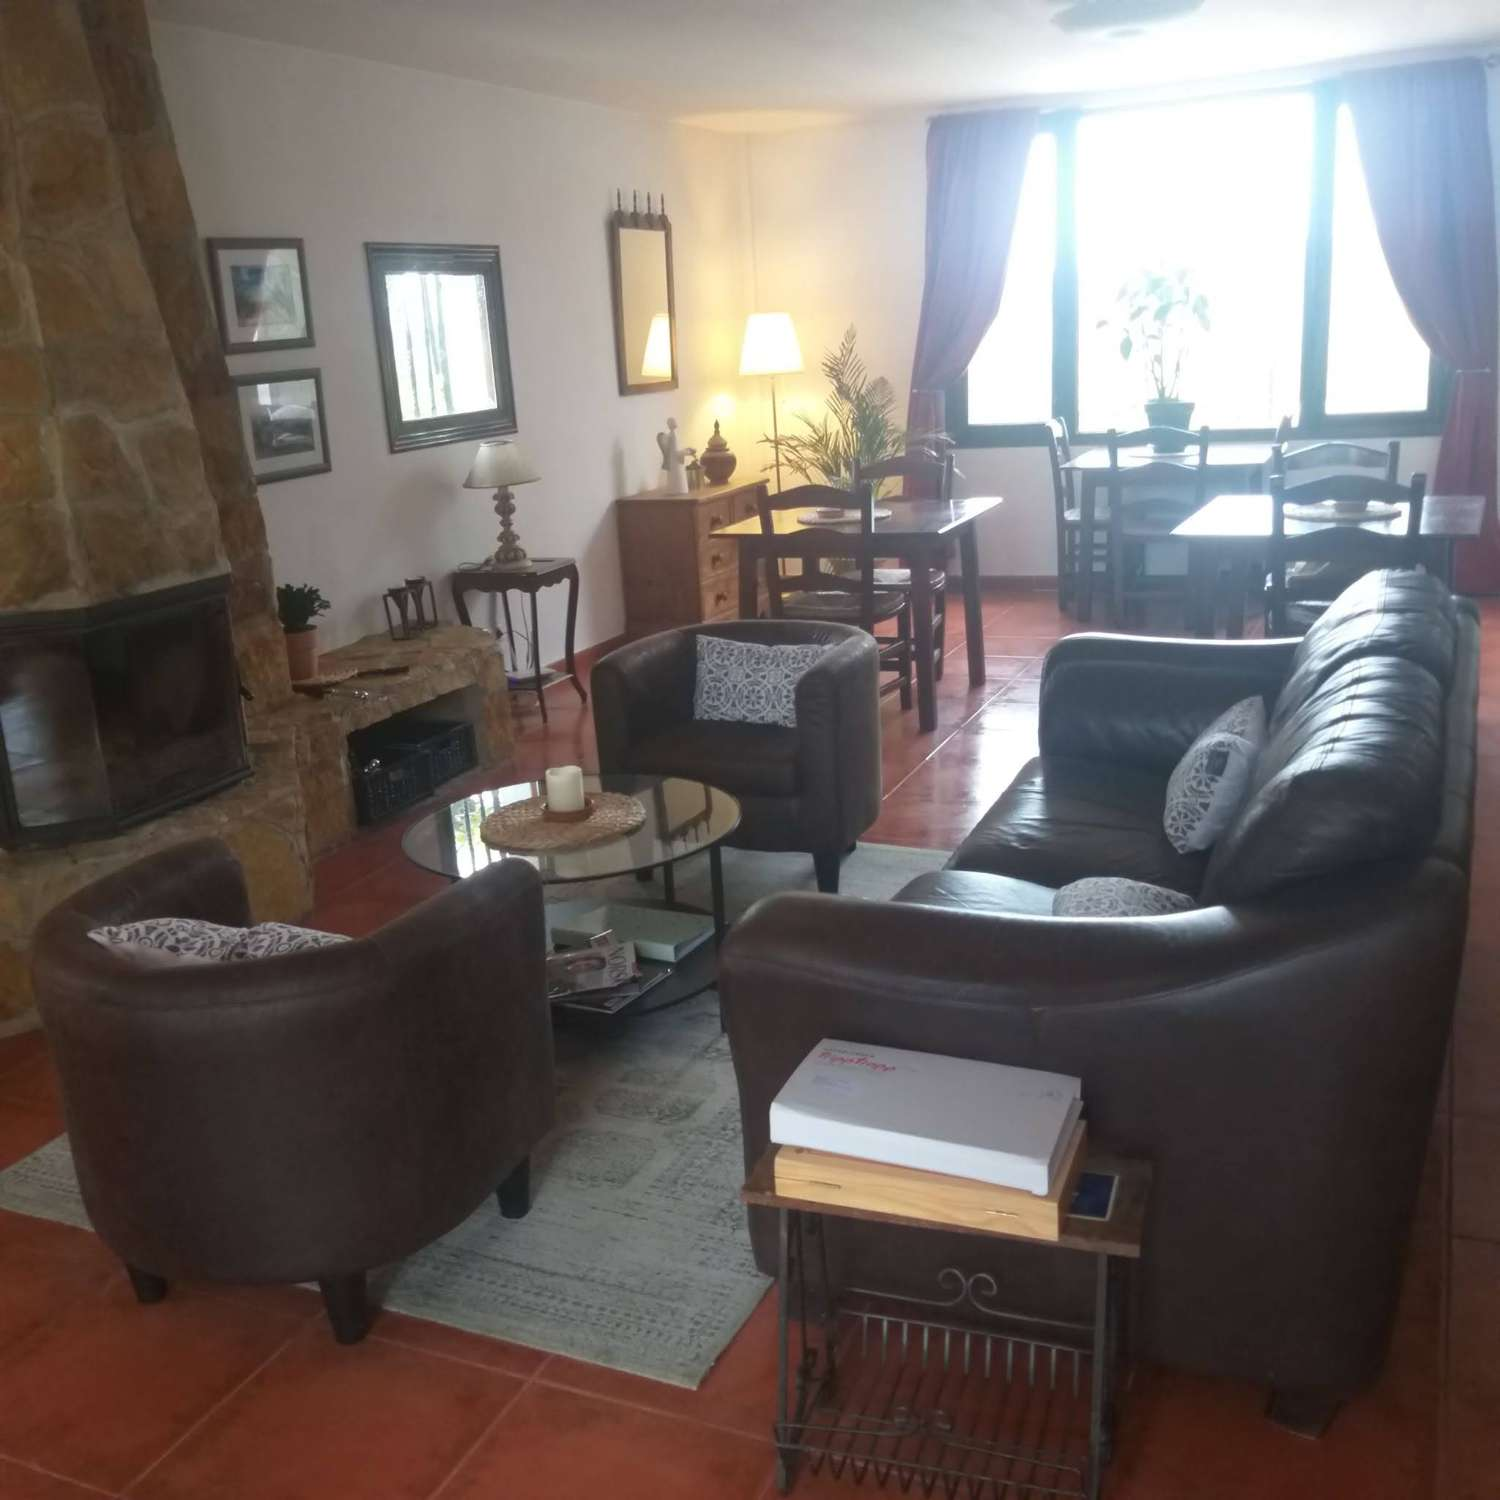 FANTASTIC COUNTRY HOUSE WITH SEPARATE GUEST HOUSE AND STUNNING VIEWS